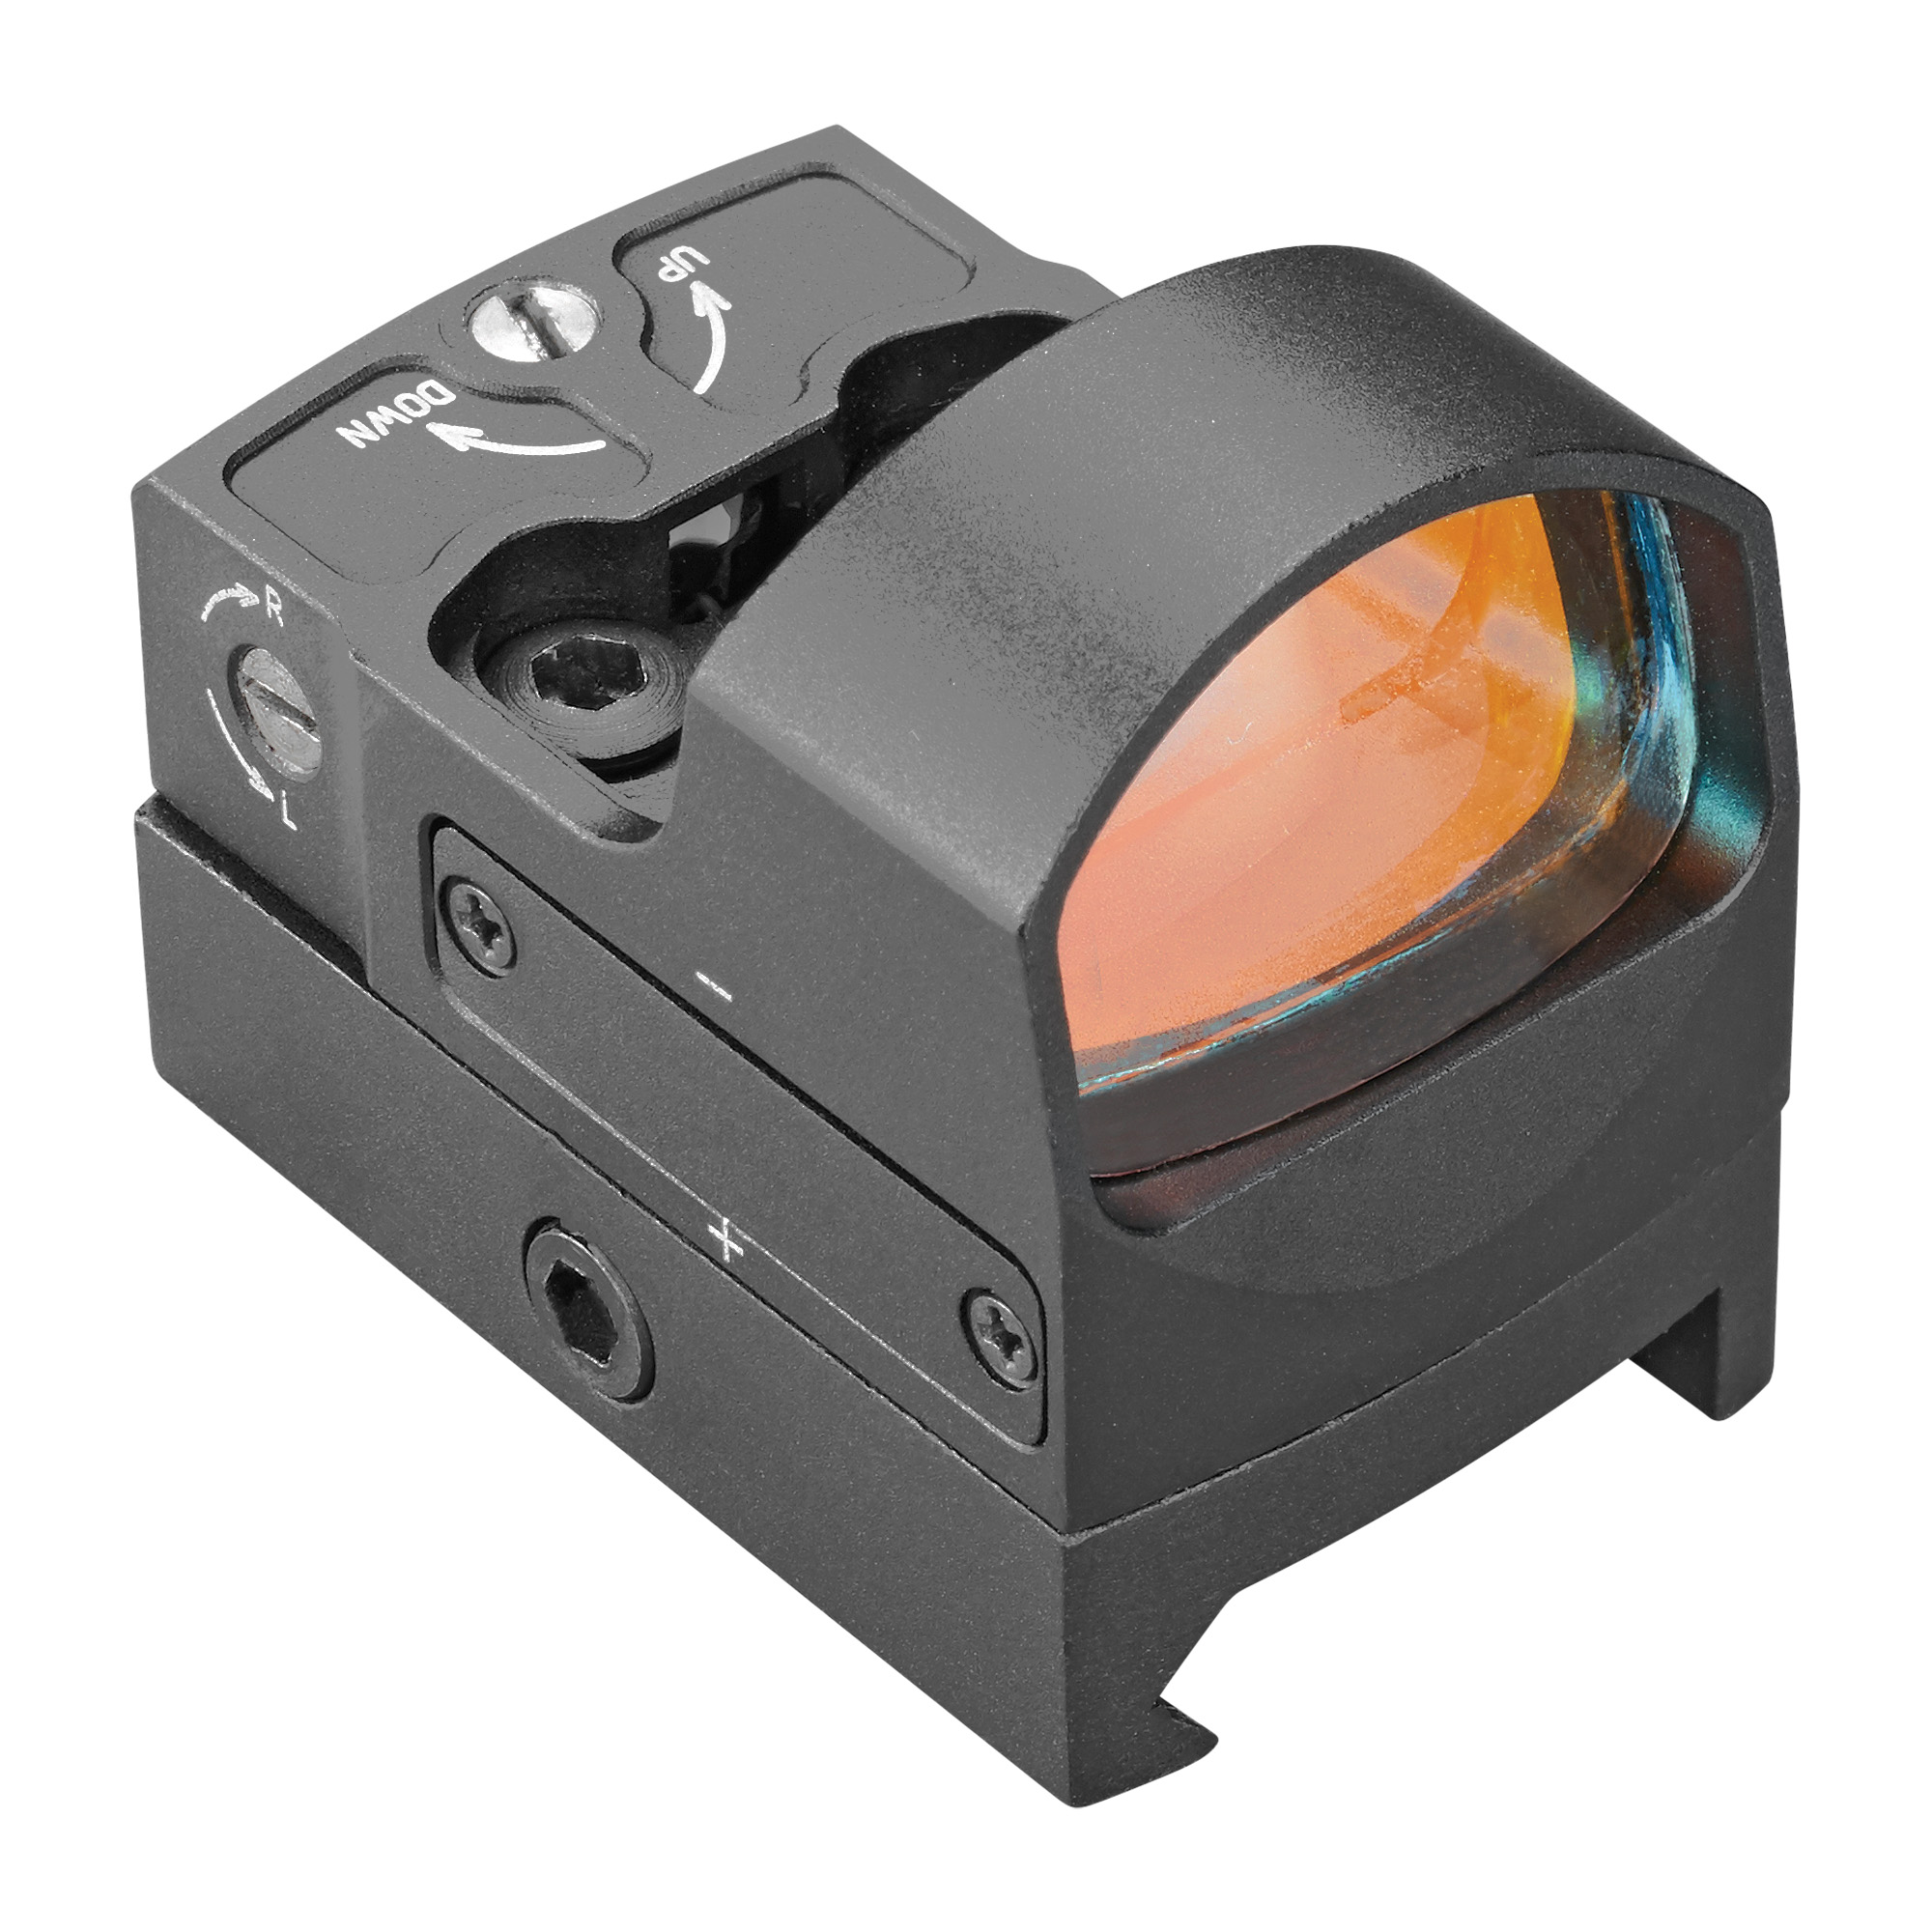 Tasco 1x25 Red Dot 4 Moa Pstl Mount